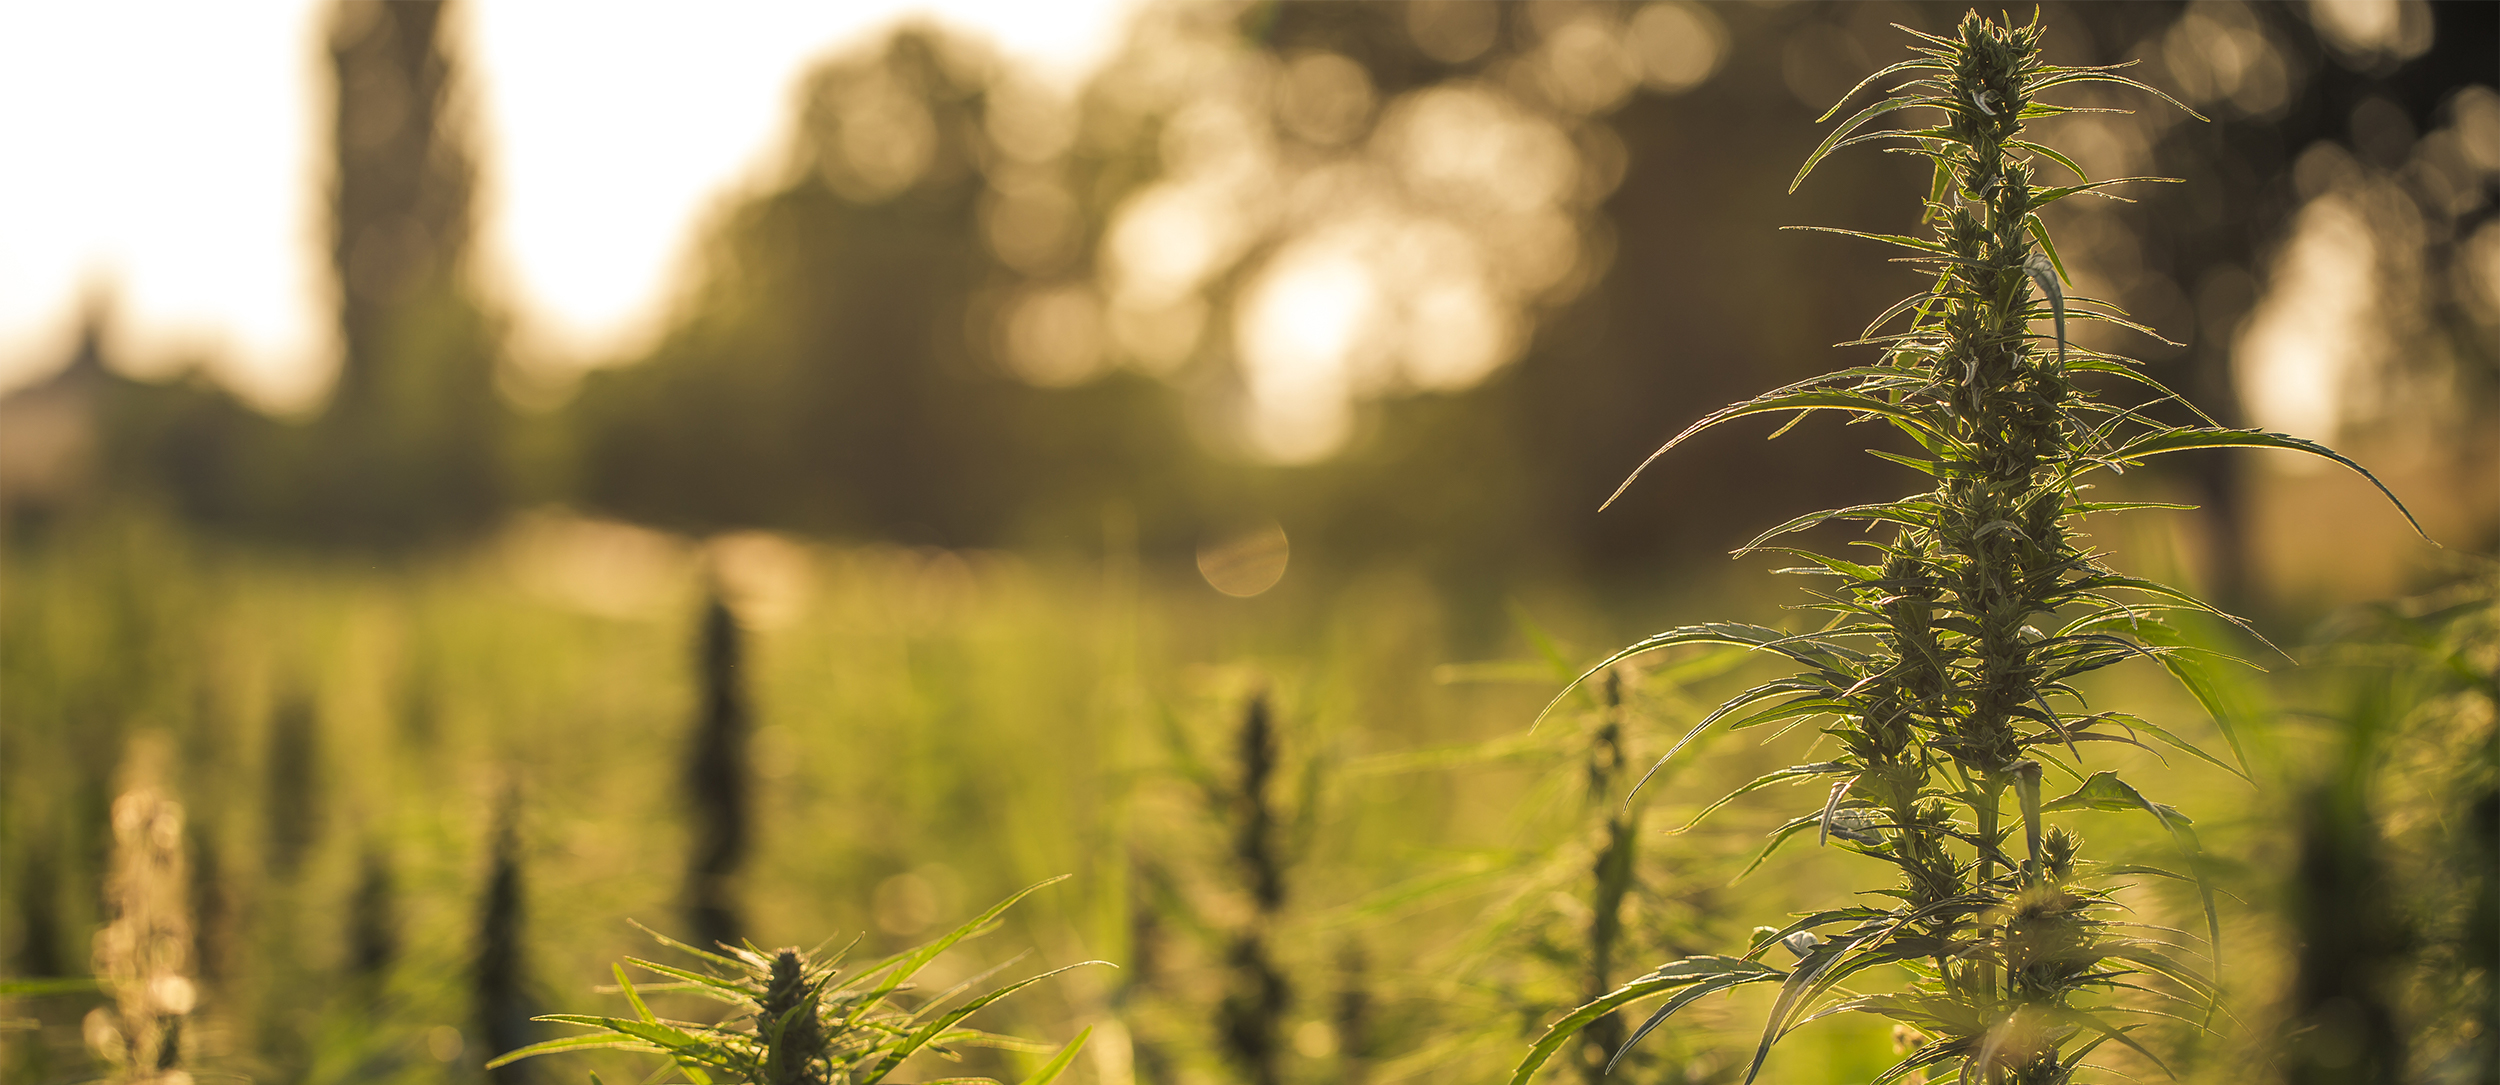 Growing Industrial Hemp-Risks and Rewards